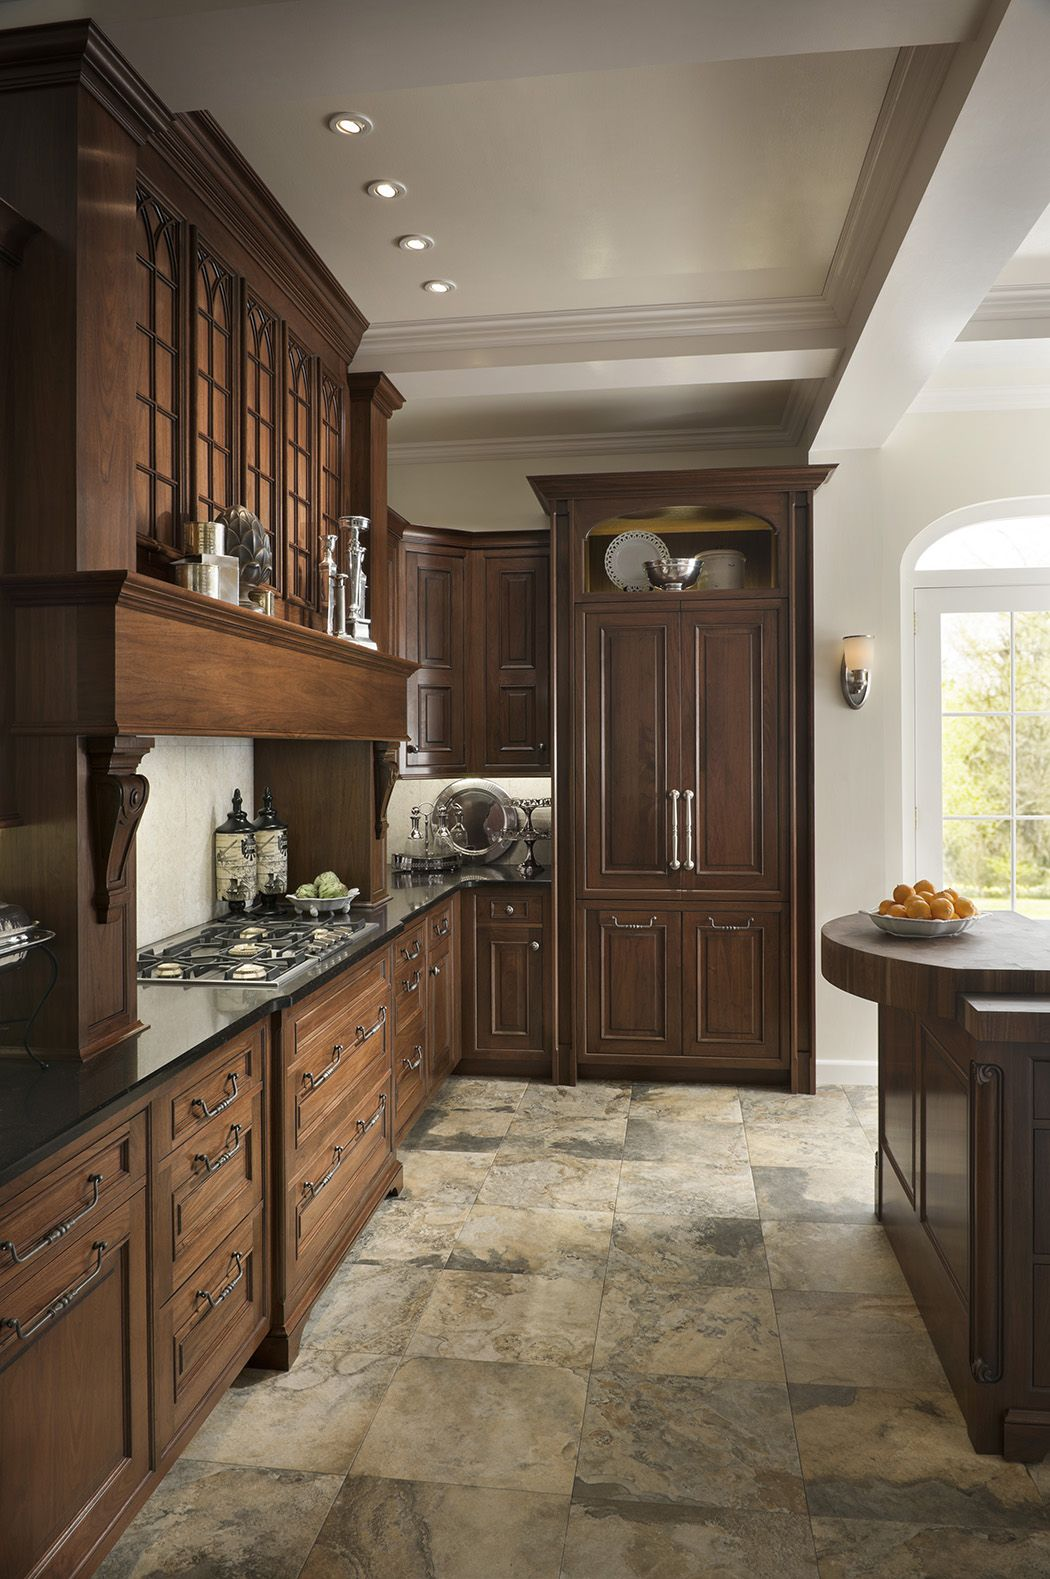 Modern Classic Kitchen Design: Elegant Traditions Kitchen By #WoodMode, Shown In Sable